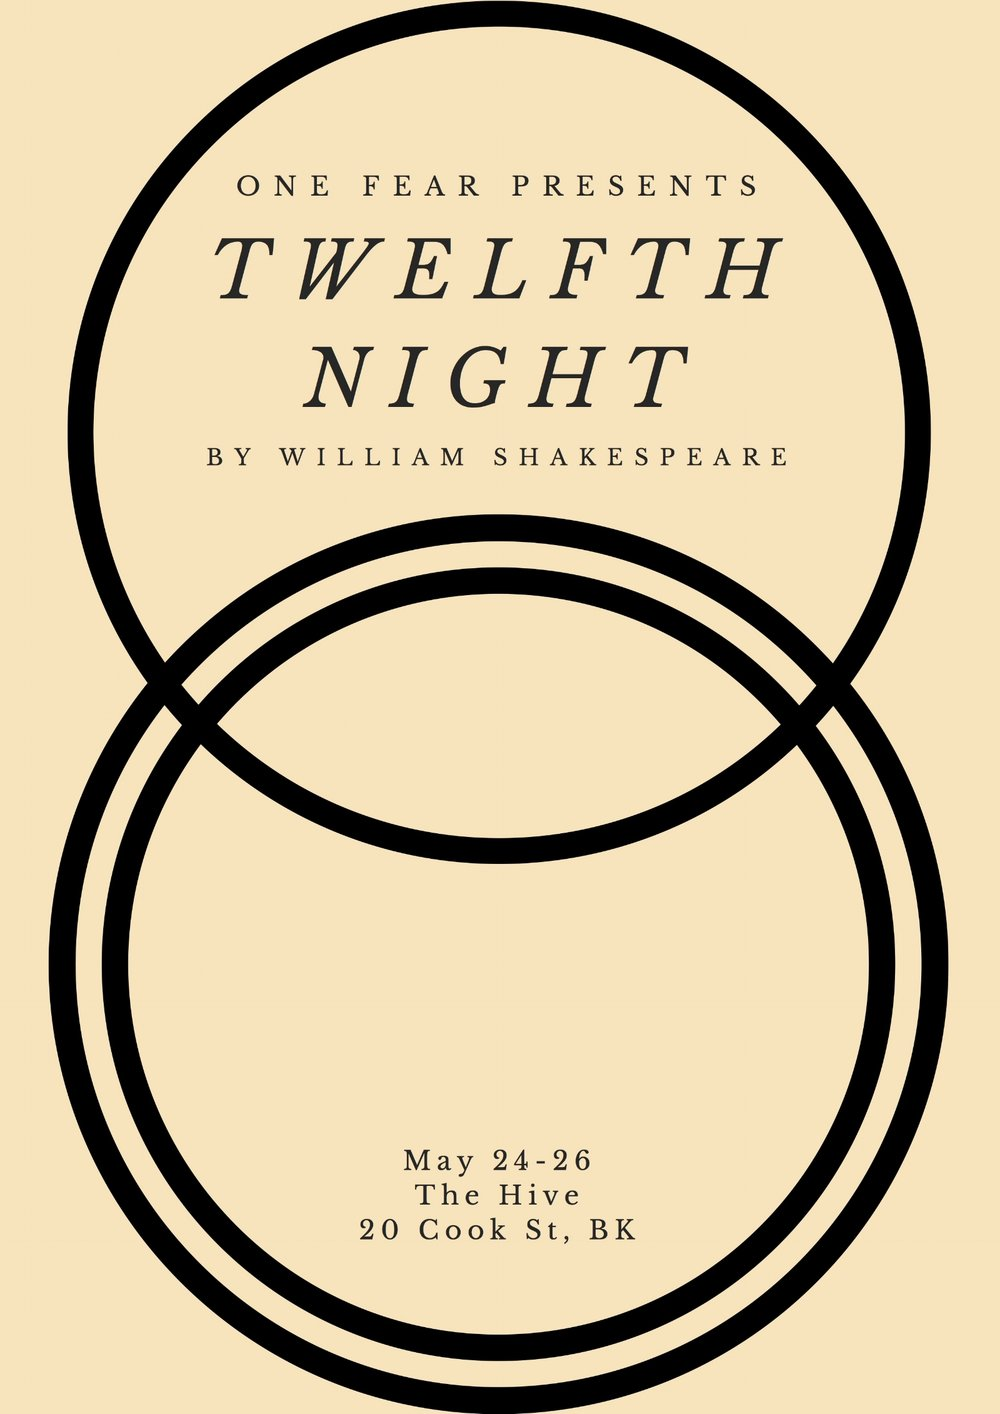 Twelfth Night - - May 24 - 26, 2018 -One Fear Presents their second show of the season, Twelfth Night. Rachel will be playing Valentine and Antonio in the company's spring production!